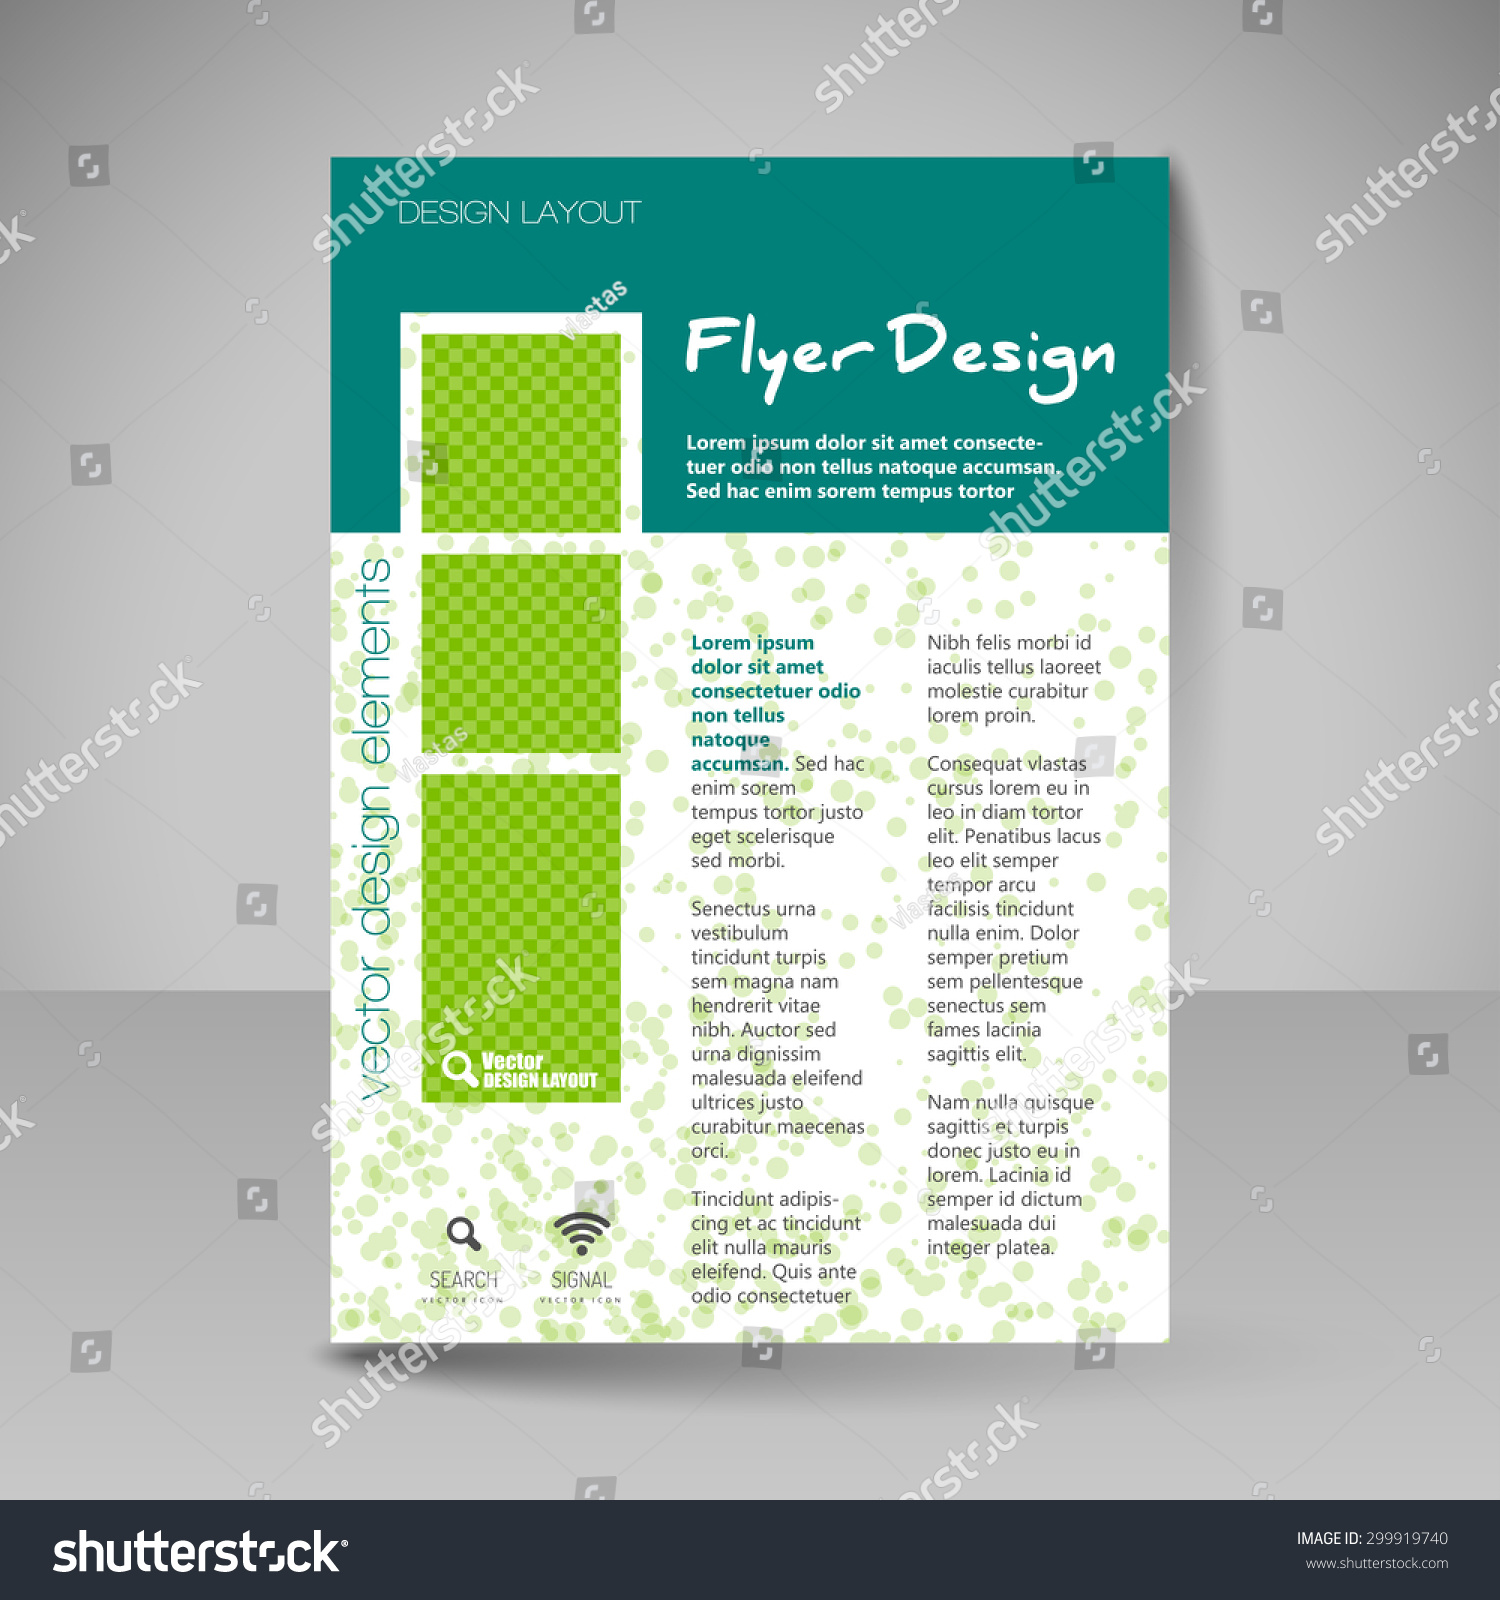 Template brochure flyer editable site business stock for Editable brochure templates